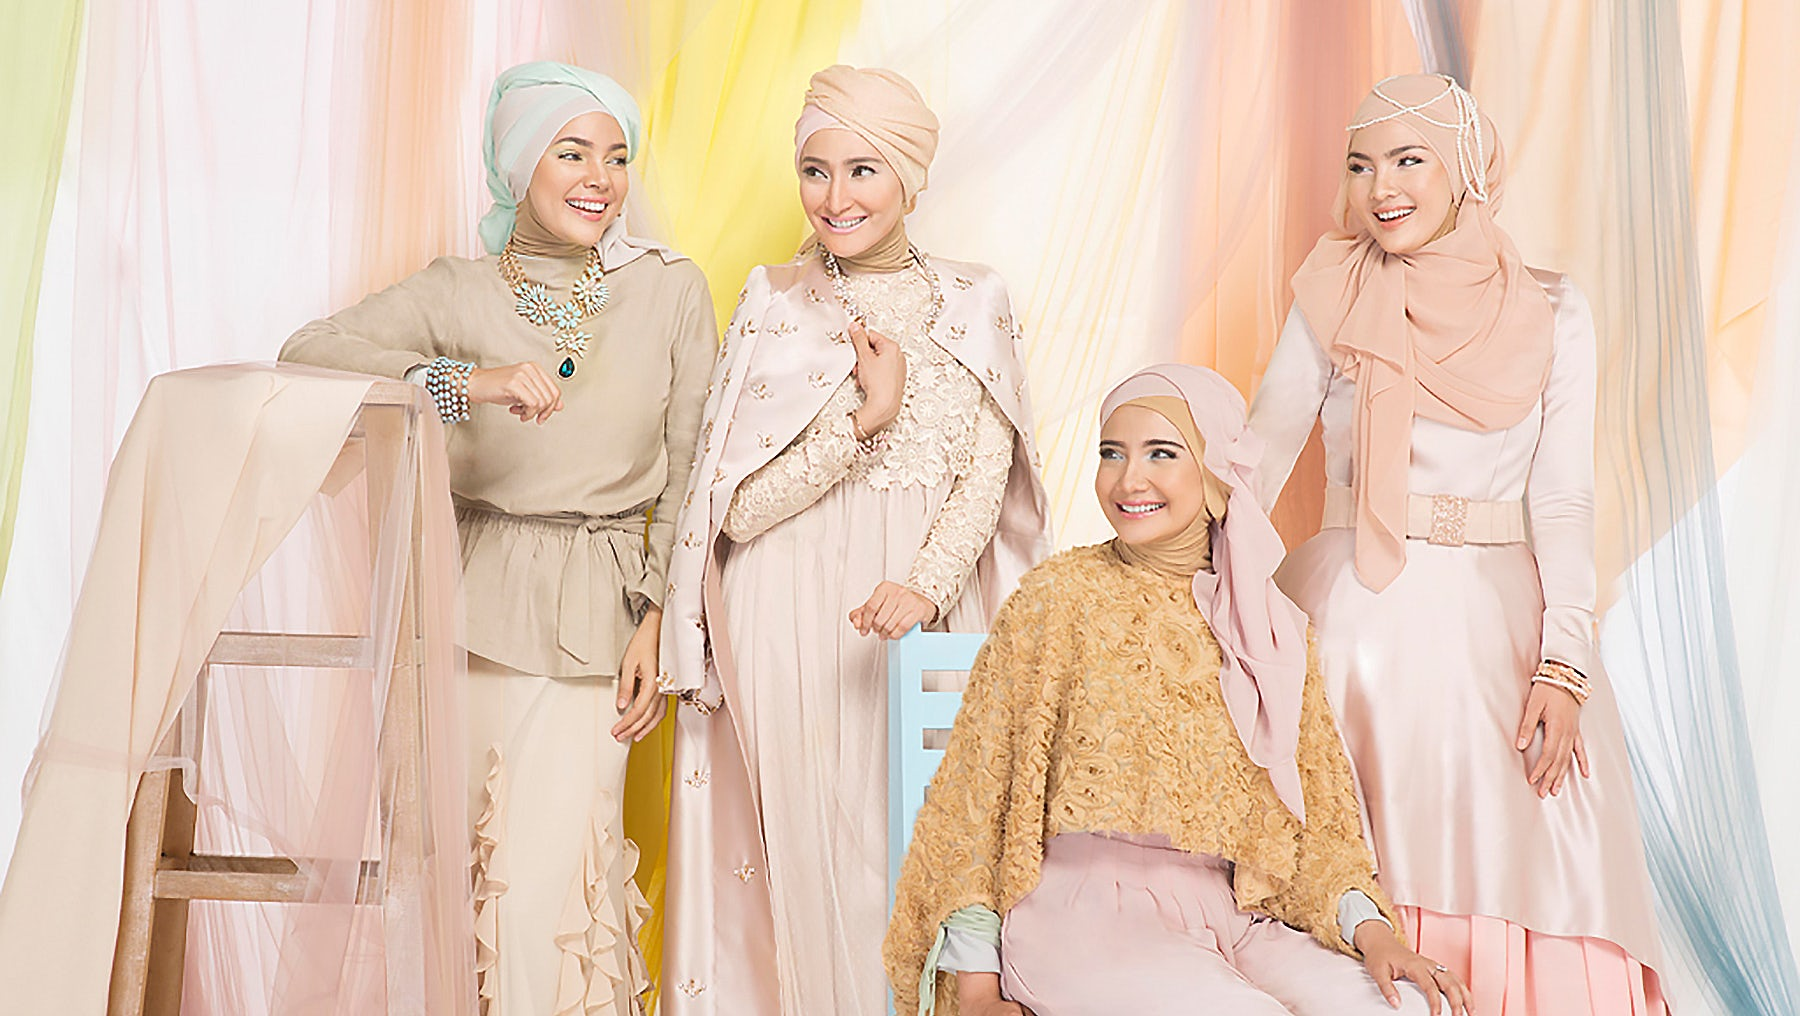 Wardah cosmetics | Source: Wardah